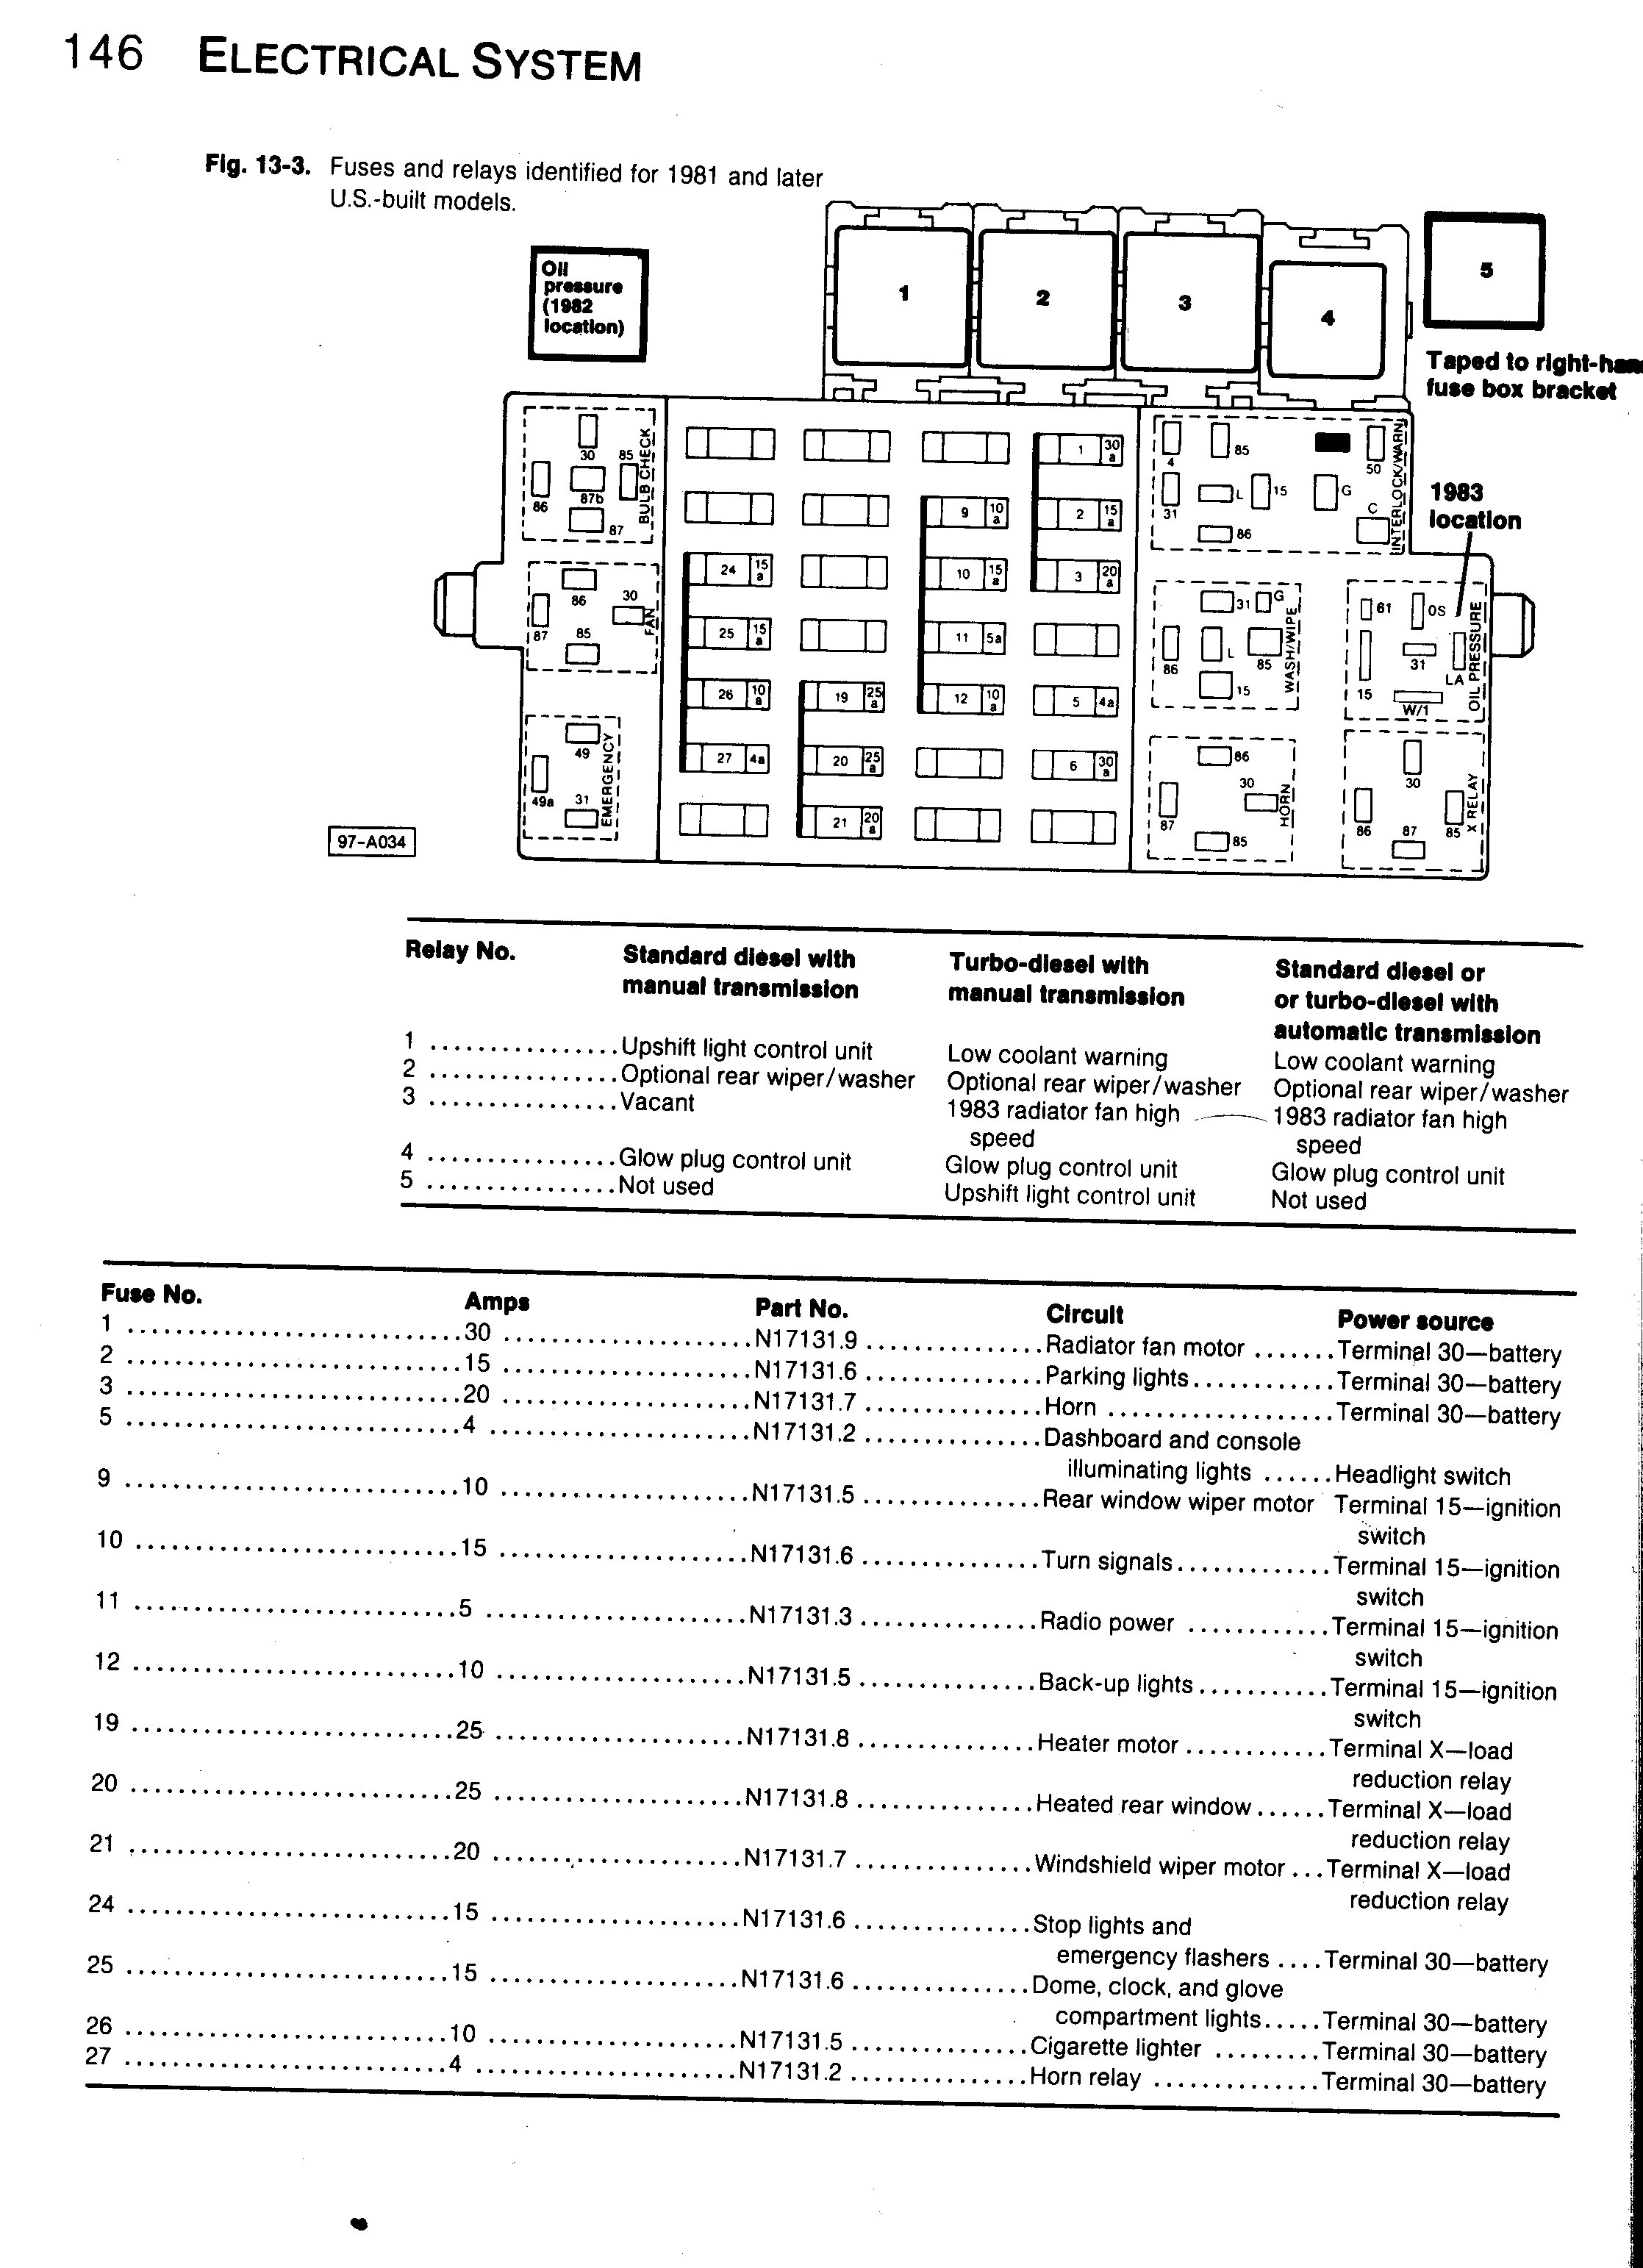 Vw Rabbit Fuse Box Free Printable Wiring Diagrams Database